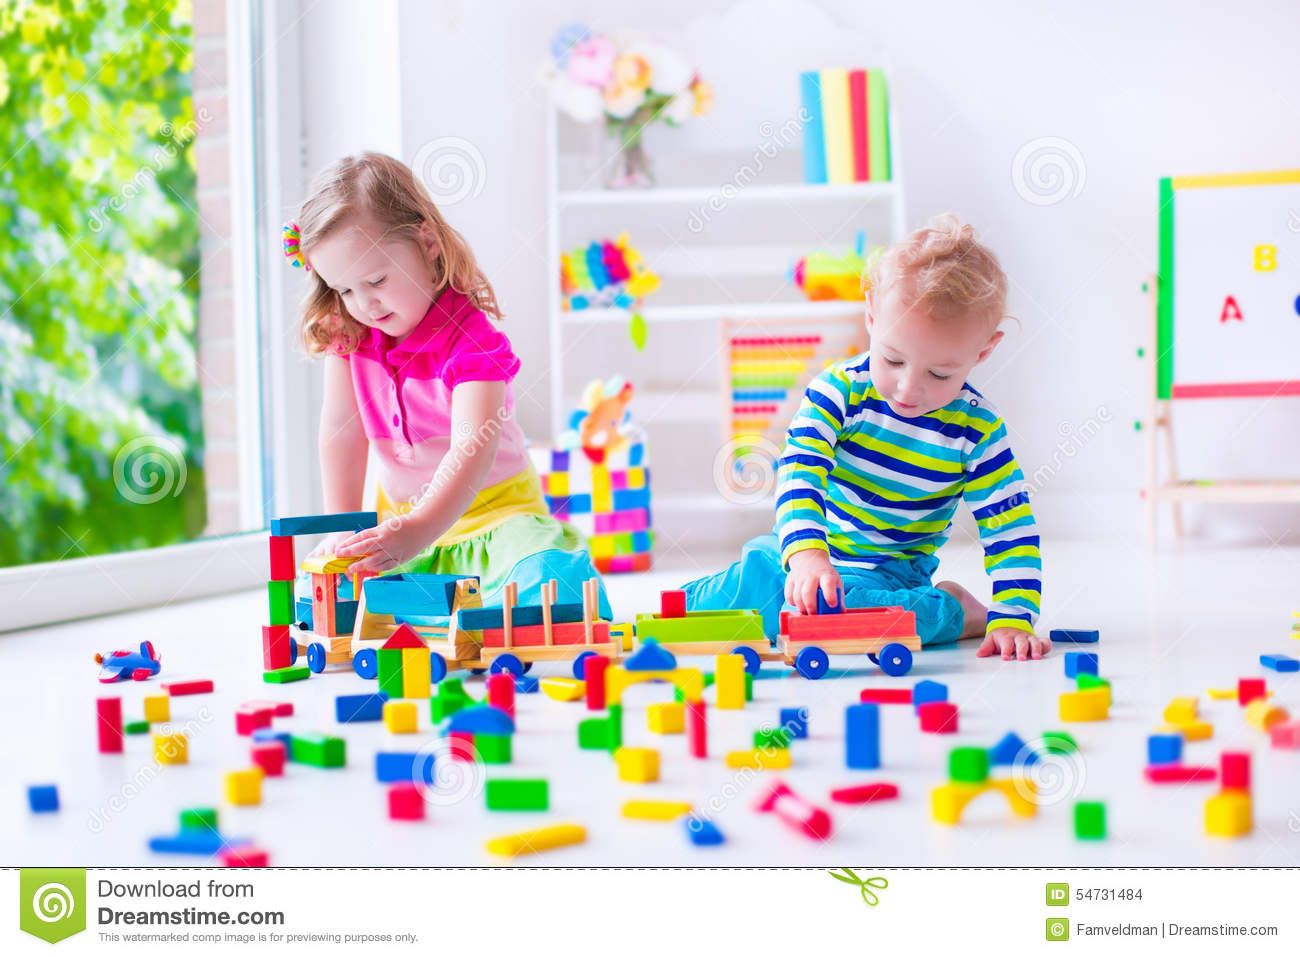 ... . Two toddler children build tower of colorful wooden blocks. Child